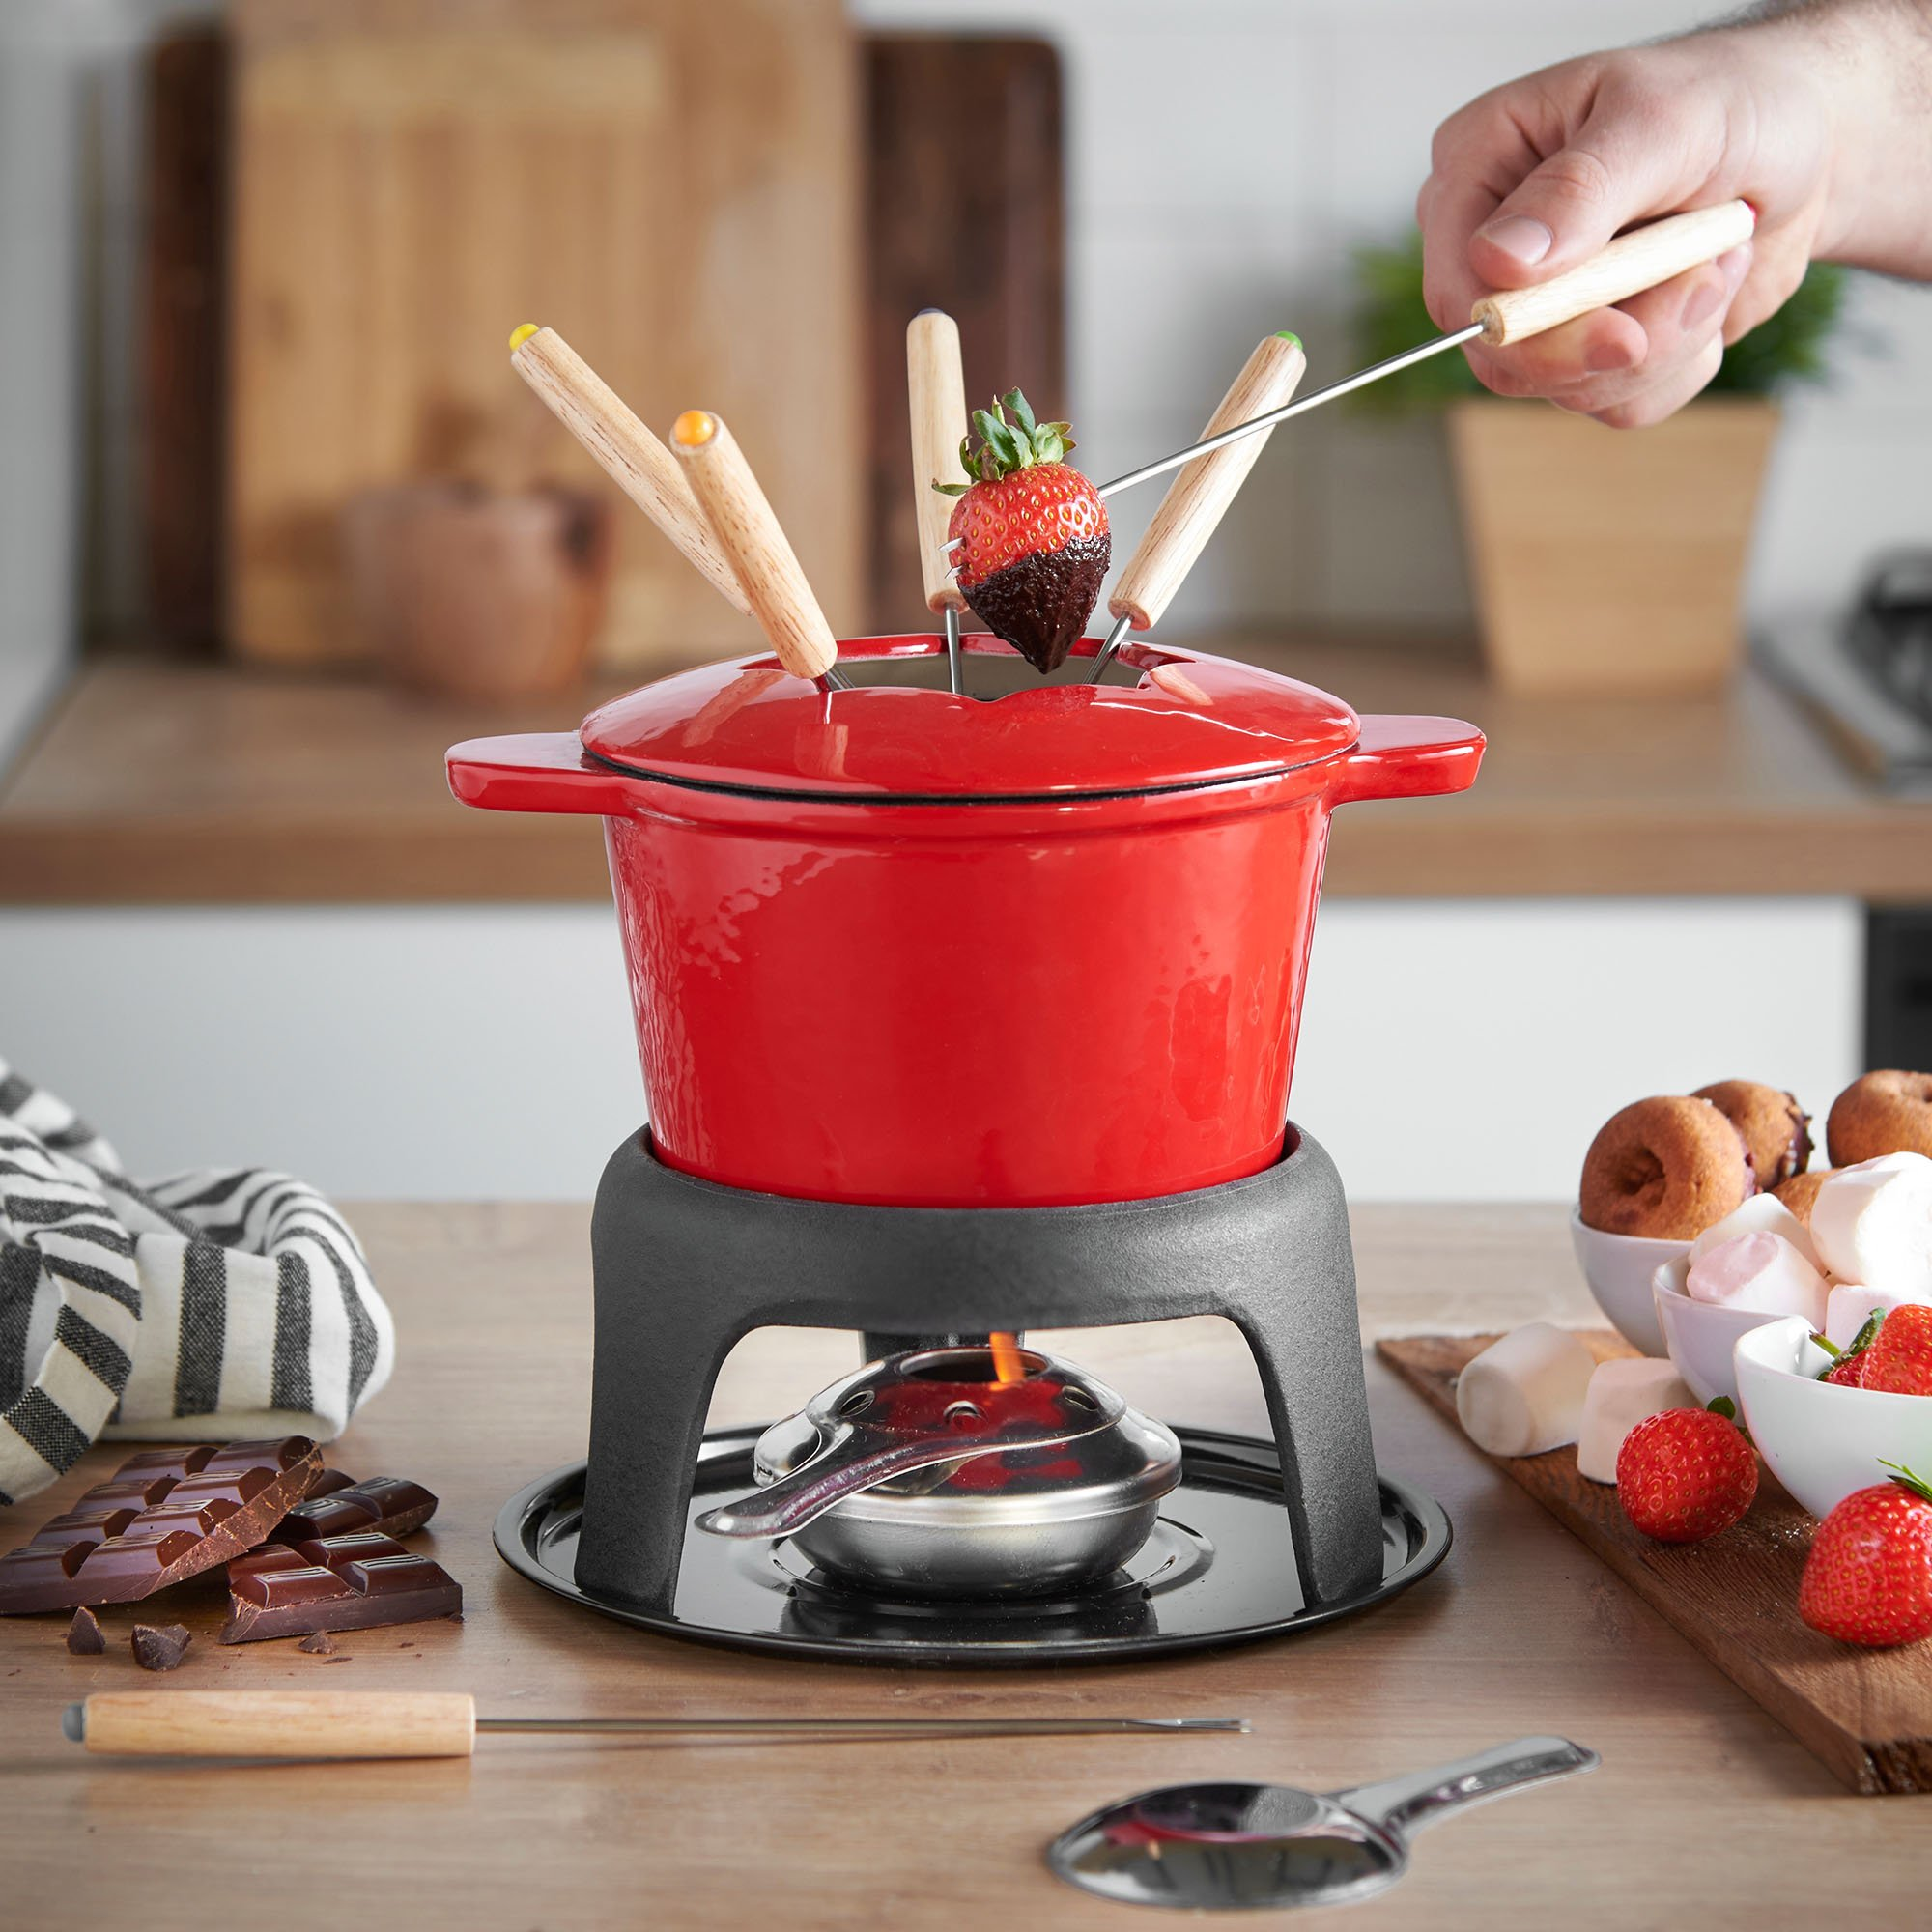 VonShef Fondue Set with 6 Fondue Forks, Stylish Cast Iron Porcelain Enamel Fondue Pot Makes All Styles of Fondue Such as Cheese and Chocolate, 1.6 QT Capacity, Red, 12pc Set by VonShef (Image #2)